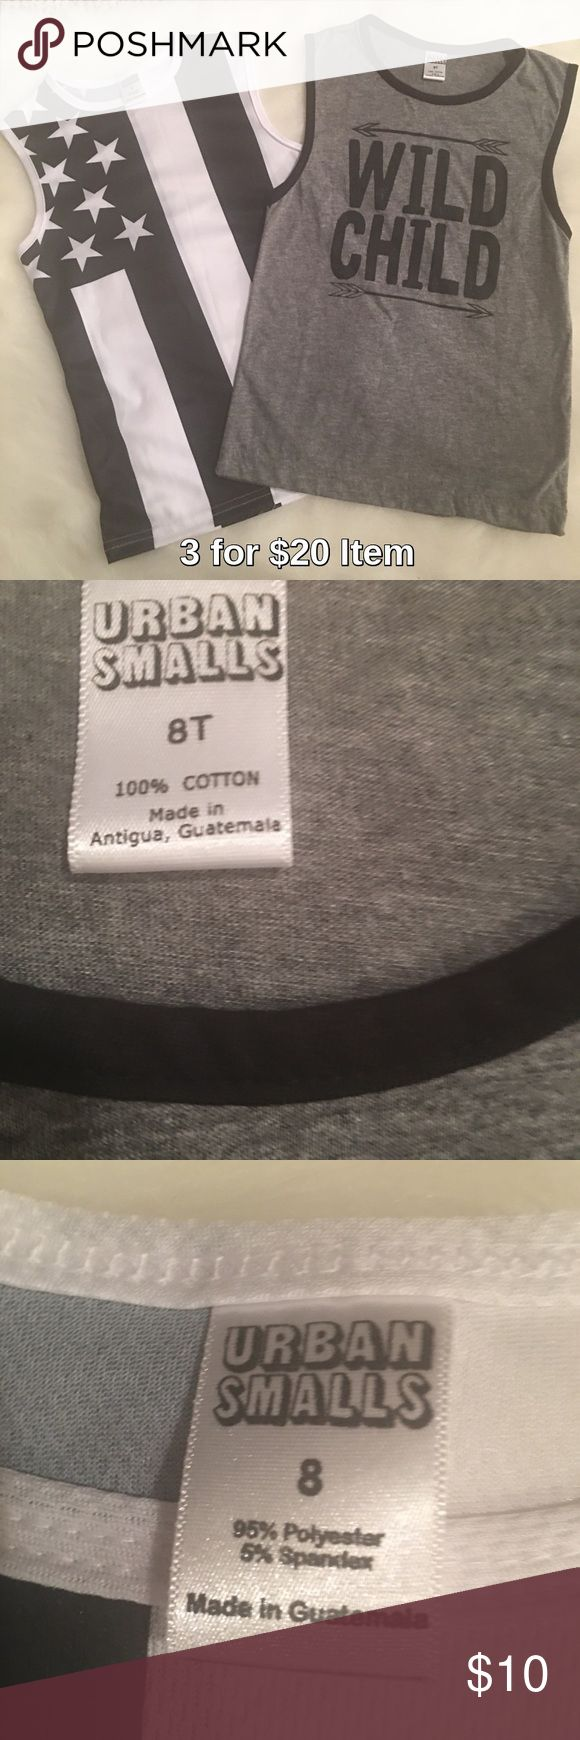 Urban Smalls Lot of 2 Boys Tanks, NWOT Sale! Price is firm unless 3 for $20 bundled. Two tanks by Urban Smalls. One is of the American Flag and the other says Wild Child. These were a gift for my stepson and were purchased from Zulily. They were too small and it was difficult to return them. Never worn, they arrived without tags, just packaged, in the mail. Both are size Boys 8. urban smalls Shirts & Tops Tank Tops